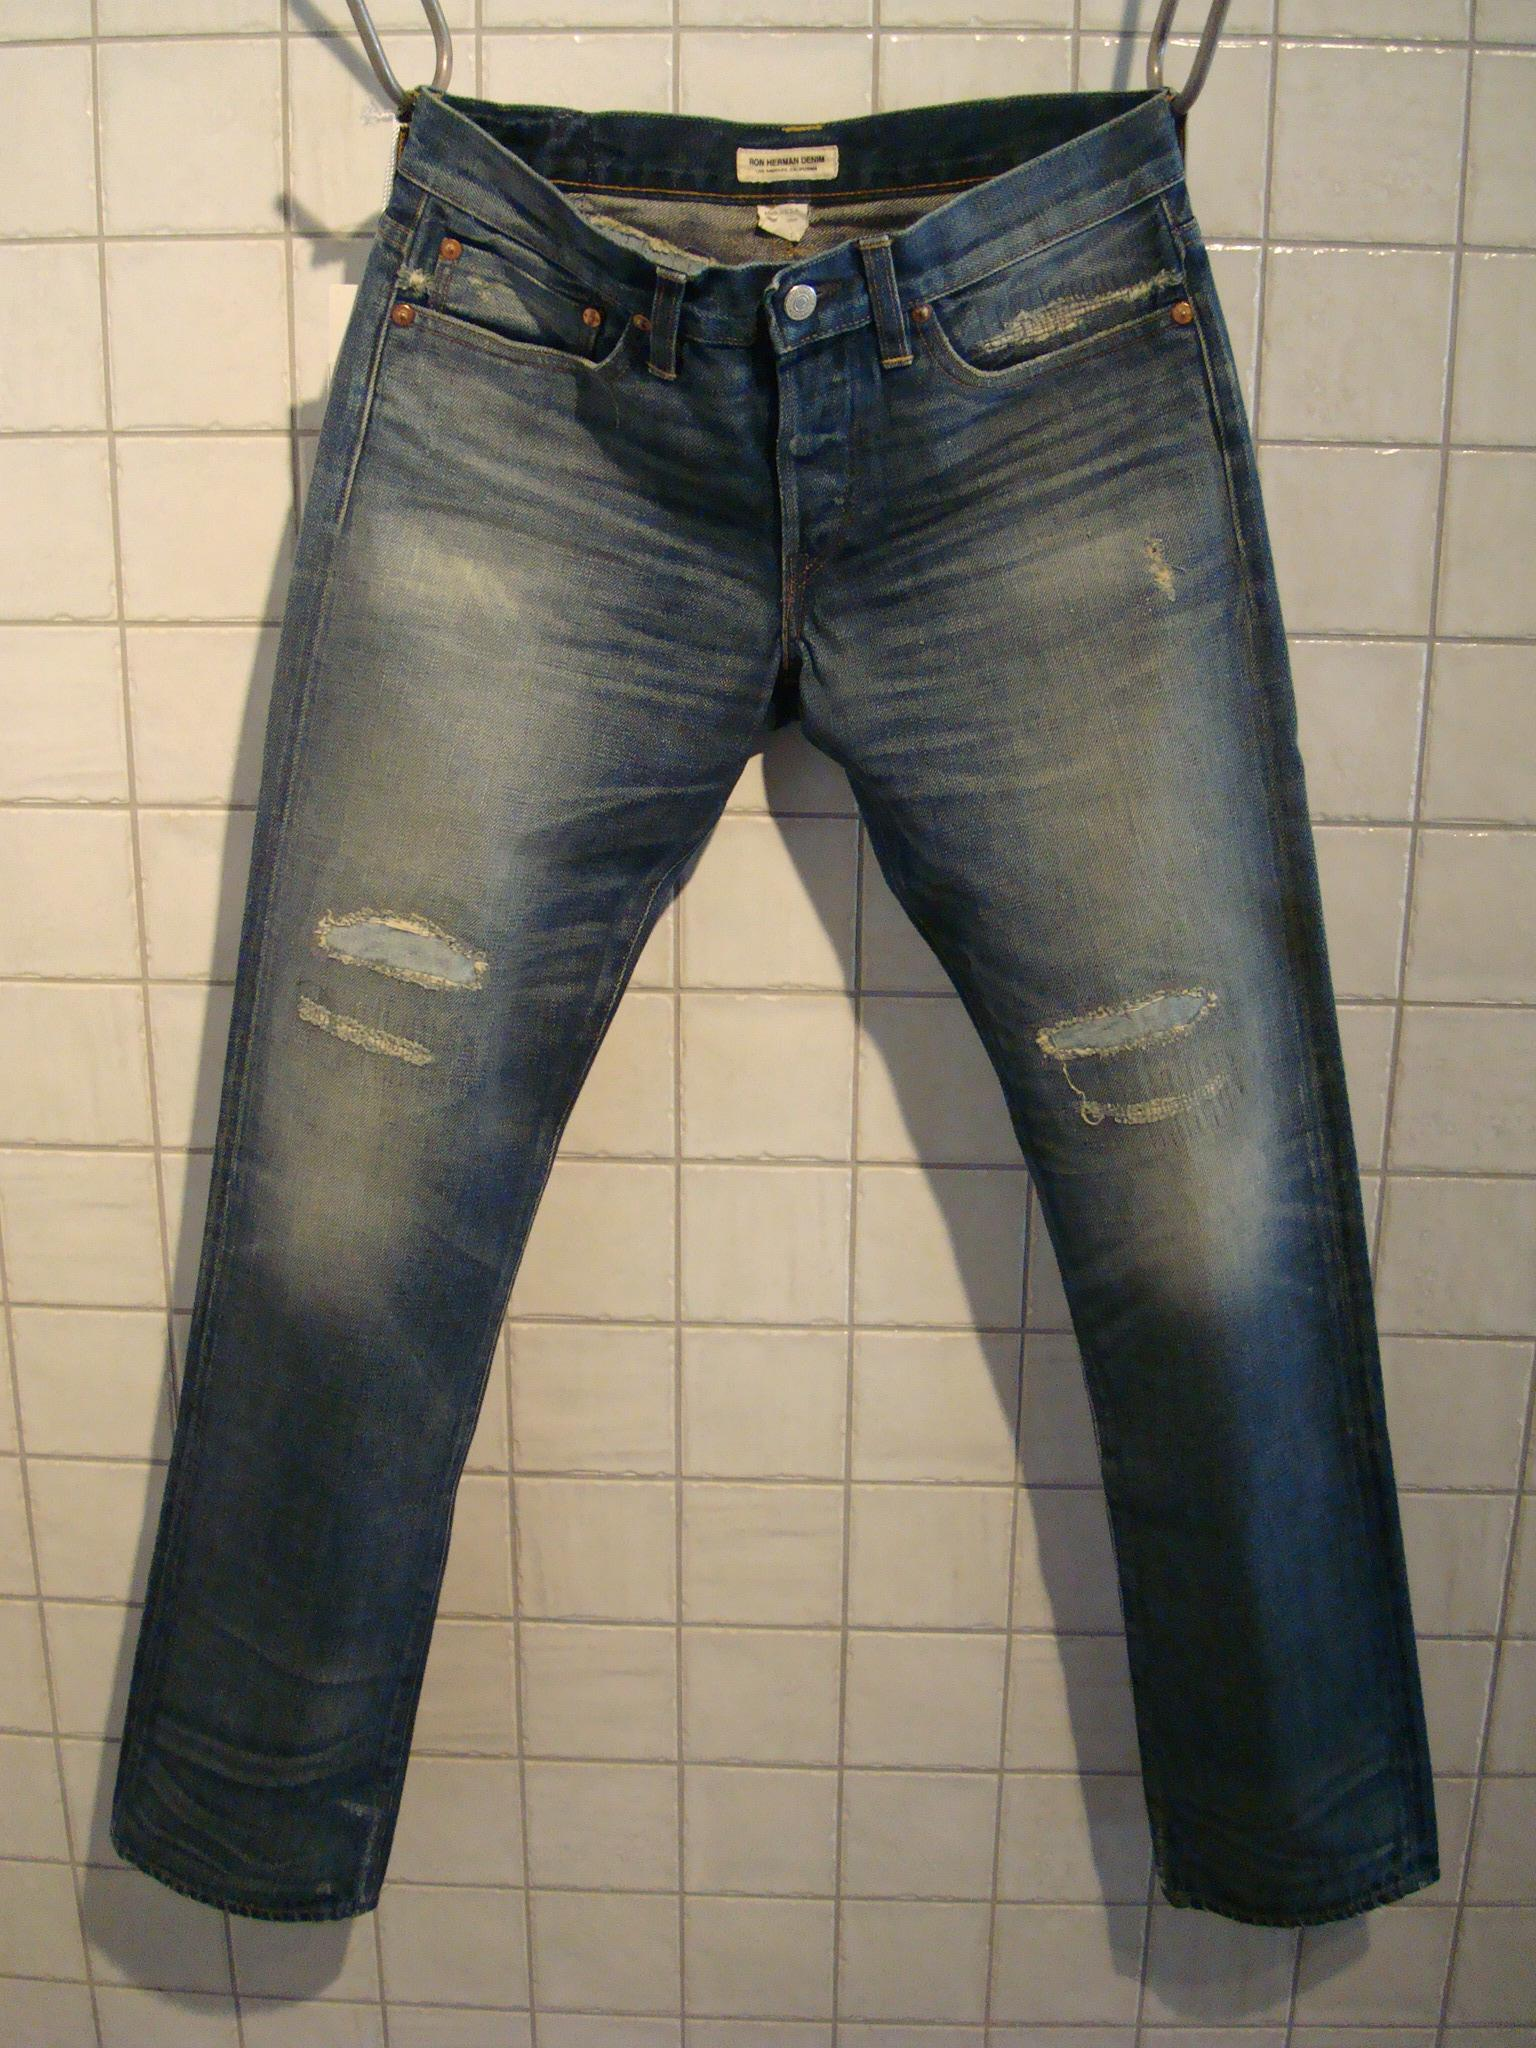 recommend - ron herman denim